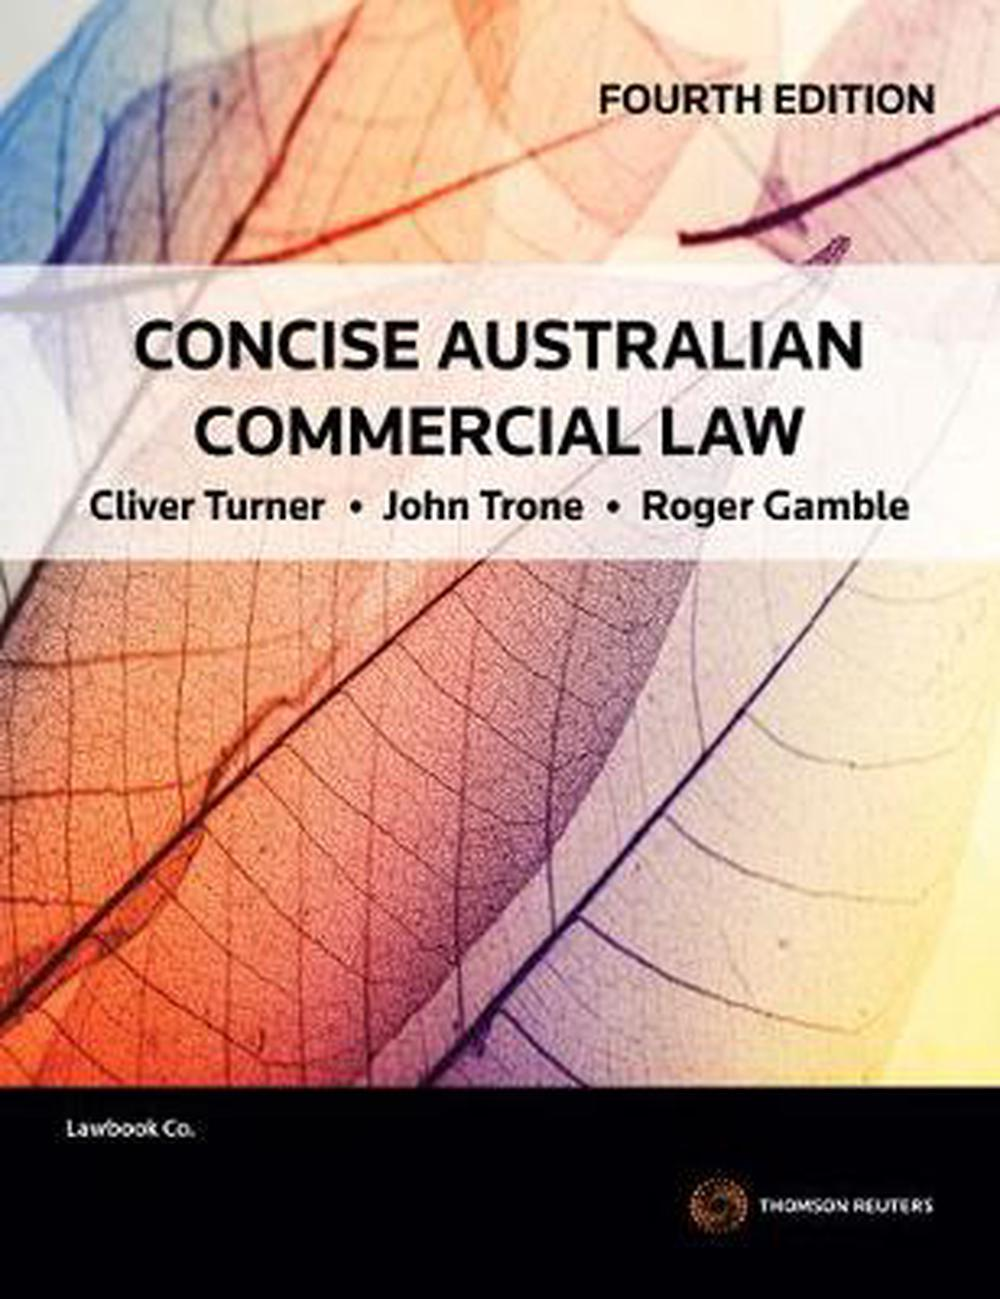 concise australian commercial law 4th edition pdf free